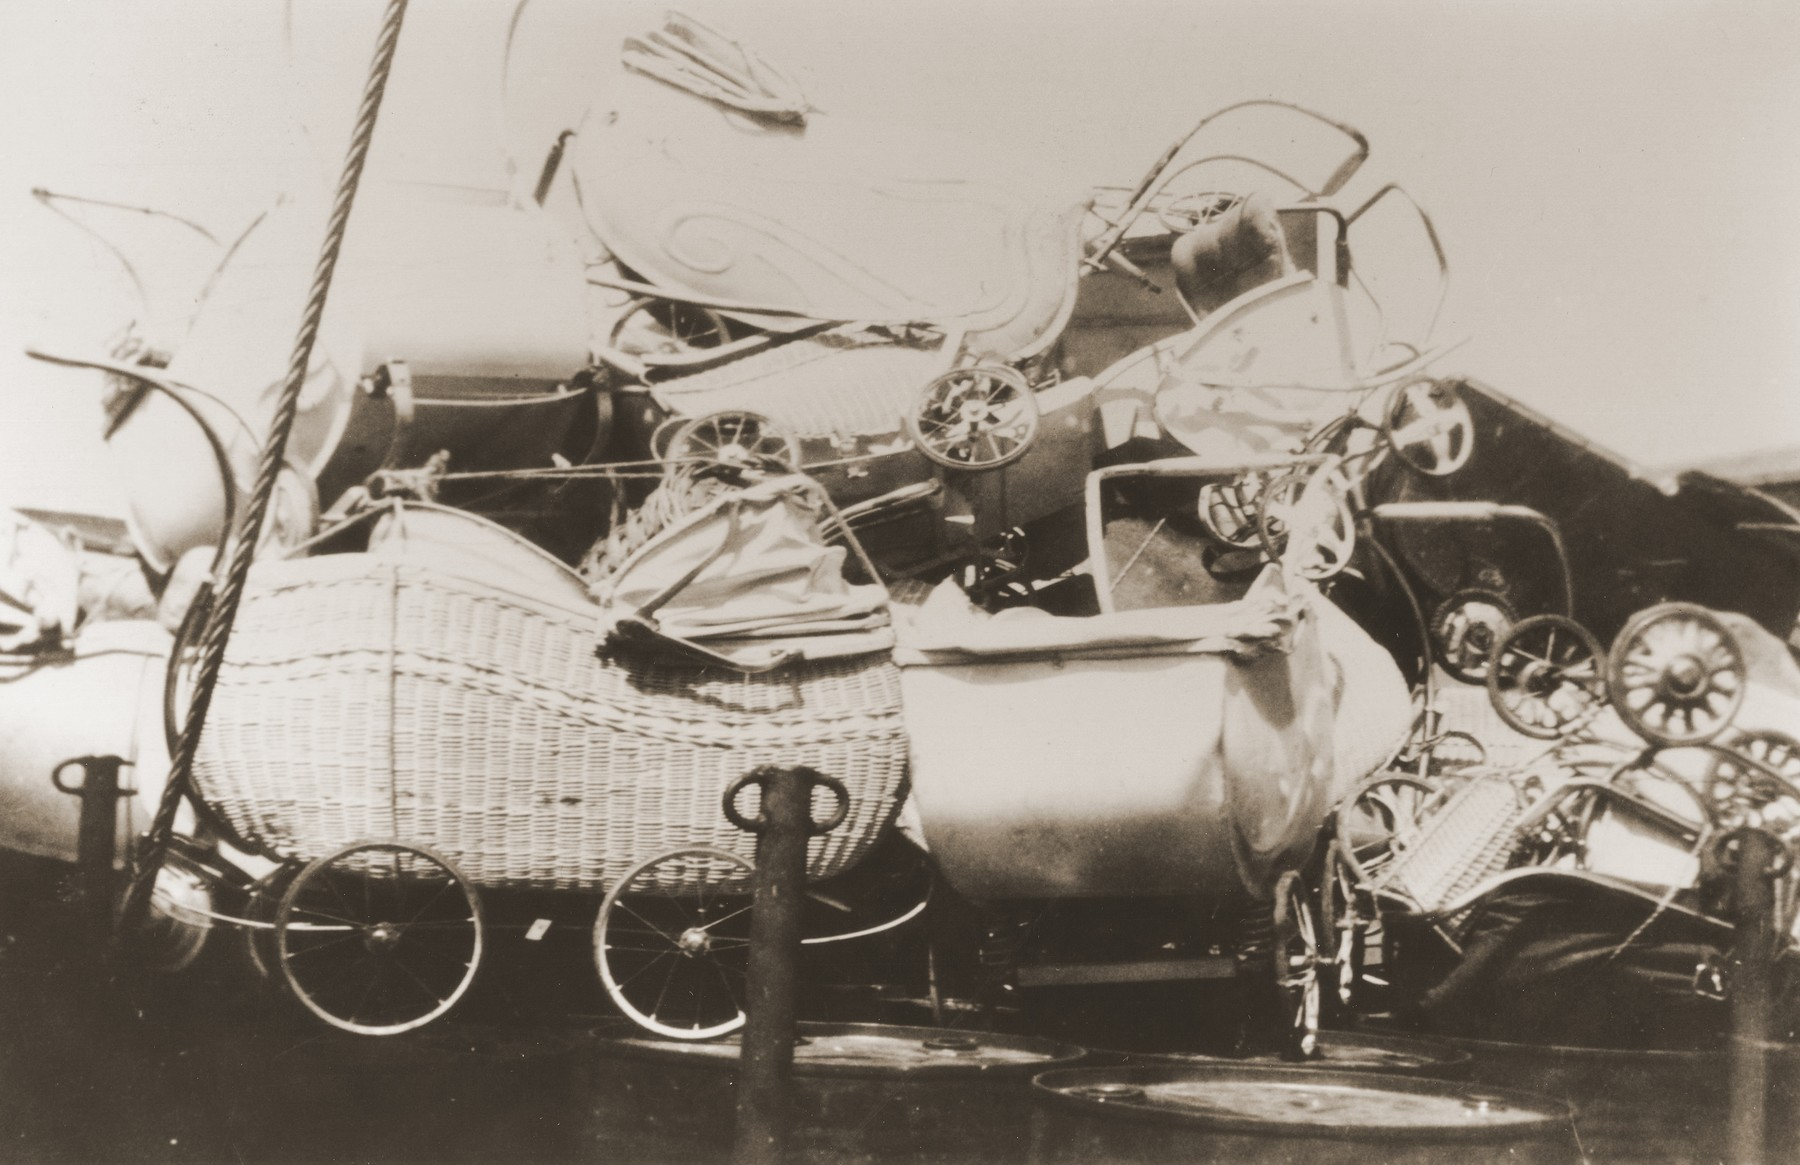 The only DP cargo was a pile of baby carriages on the deck of the Mala immigrant ship that is en route to the new State of Israel.  The carriages were often used by DPs as a means of transporting their possessions.